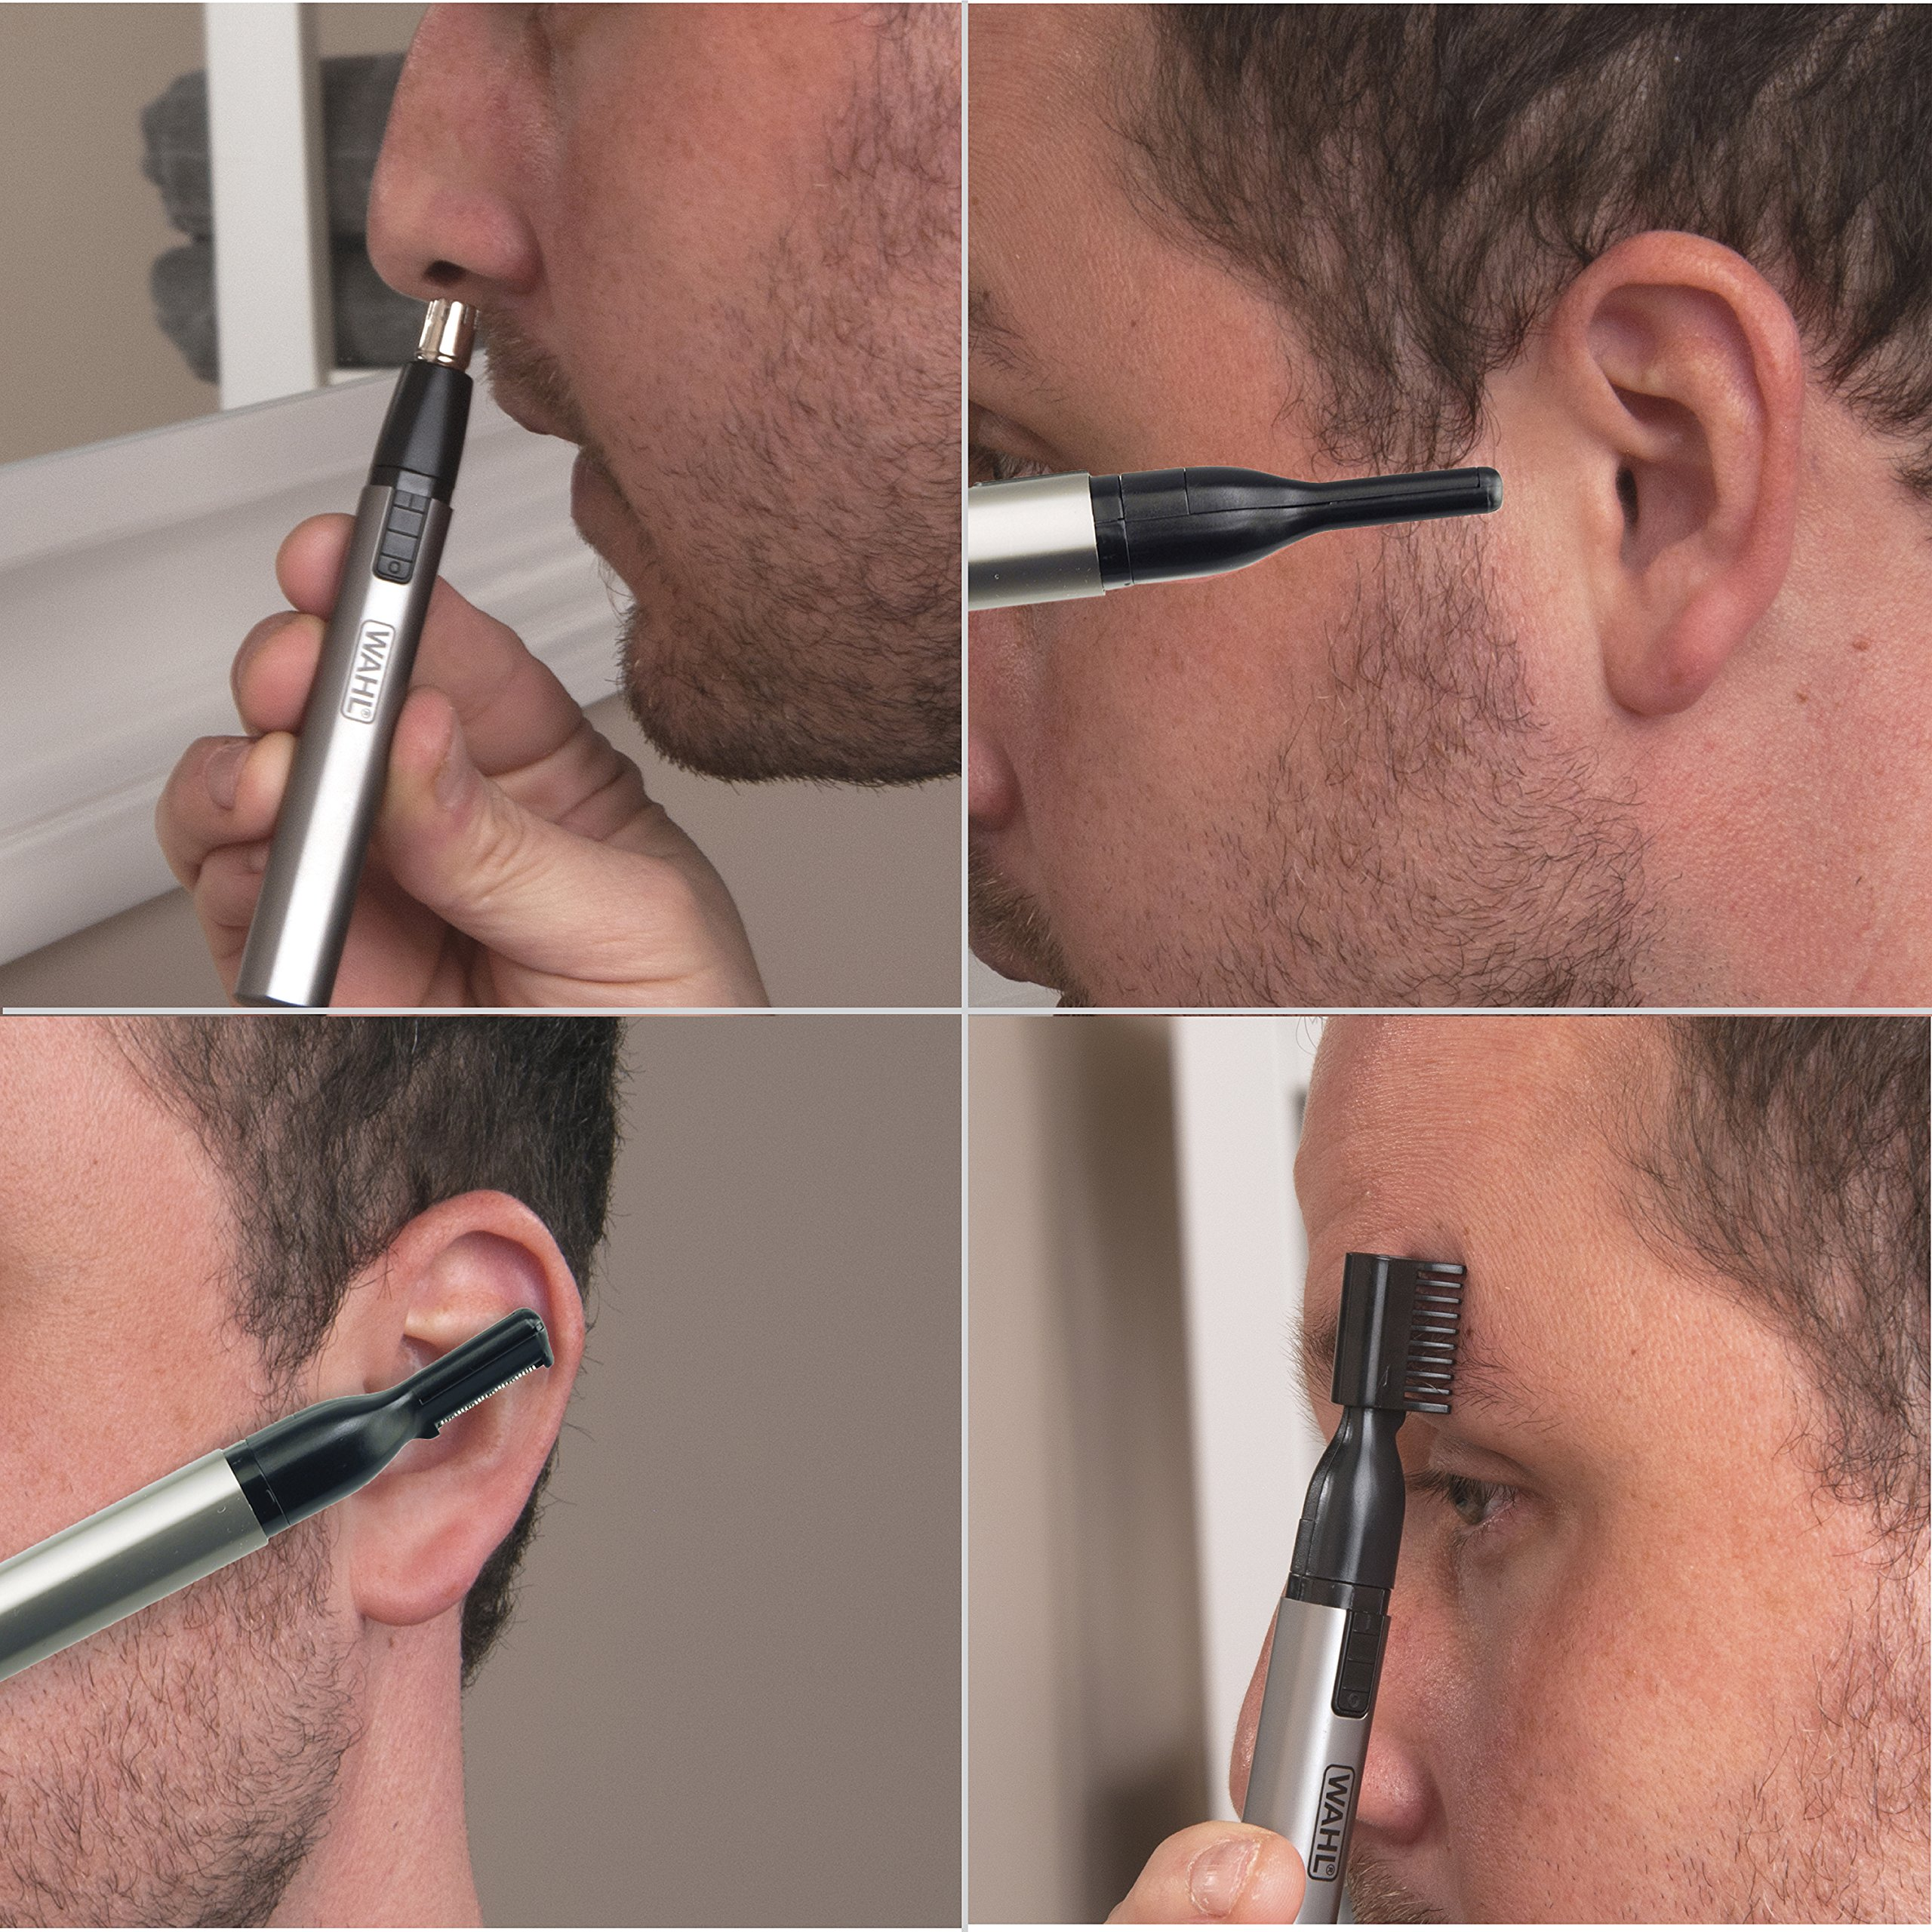 Wahl Lithium Micro Groomsman Trimmer, Compact, Cordless, Battery Operated, Includes Guide Comb, Detail Trimmer for Eyebrows, Sideburns, and Neckline Trimming, and Eye and Nose Hair Trimmer, 5640-1001 by Wahl (Image #6)